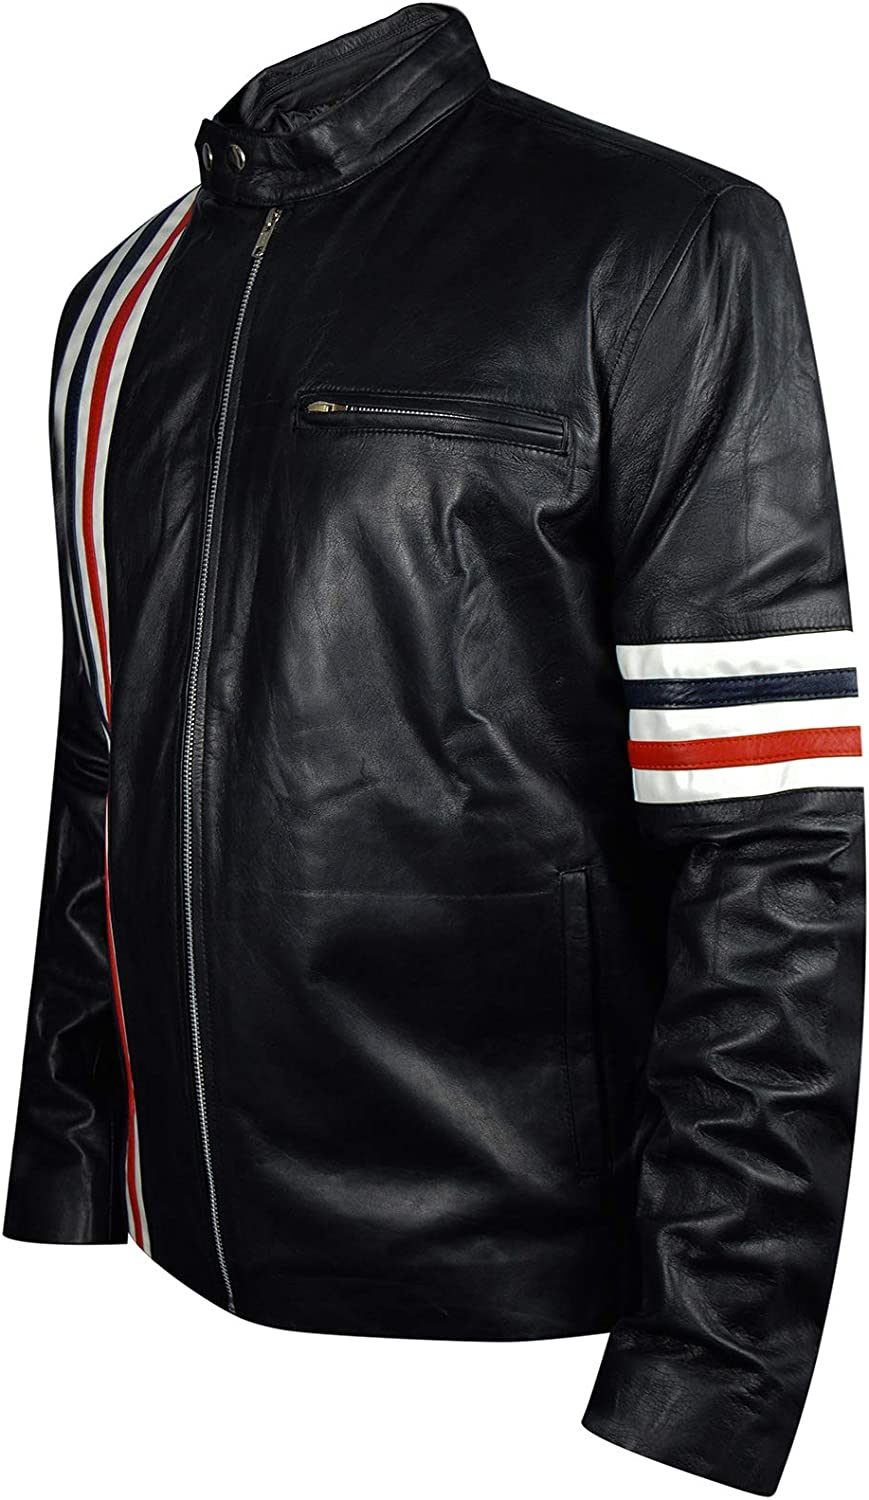 Peter Fonda Easy Rider Sheep Leather Jacket with US Flag